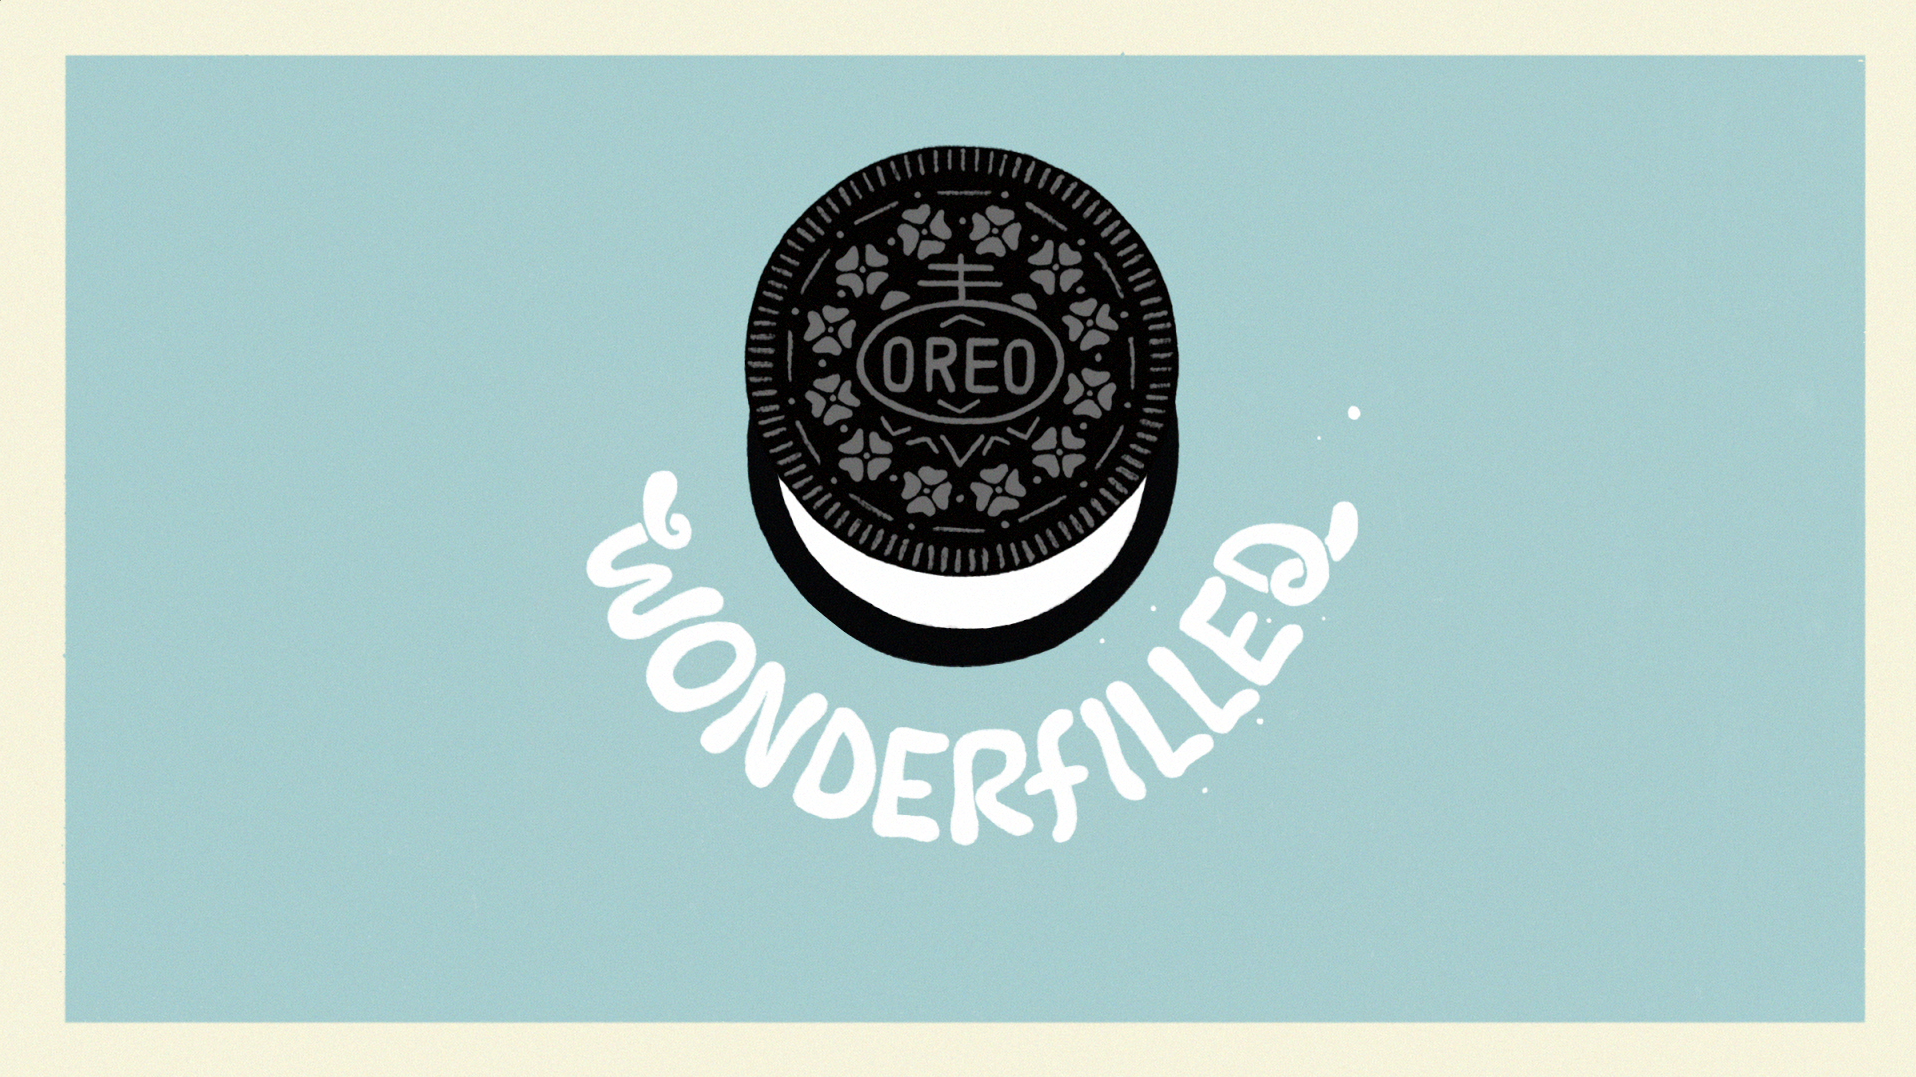 OREO Wonderfilled Song feat. Chiddy Bang